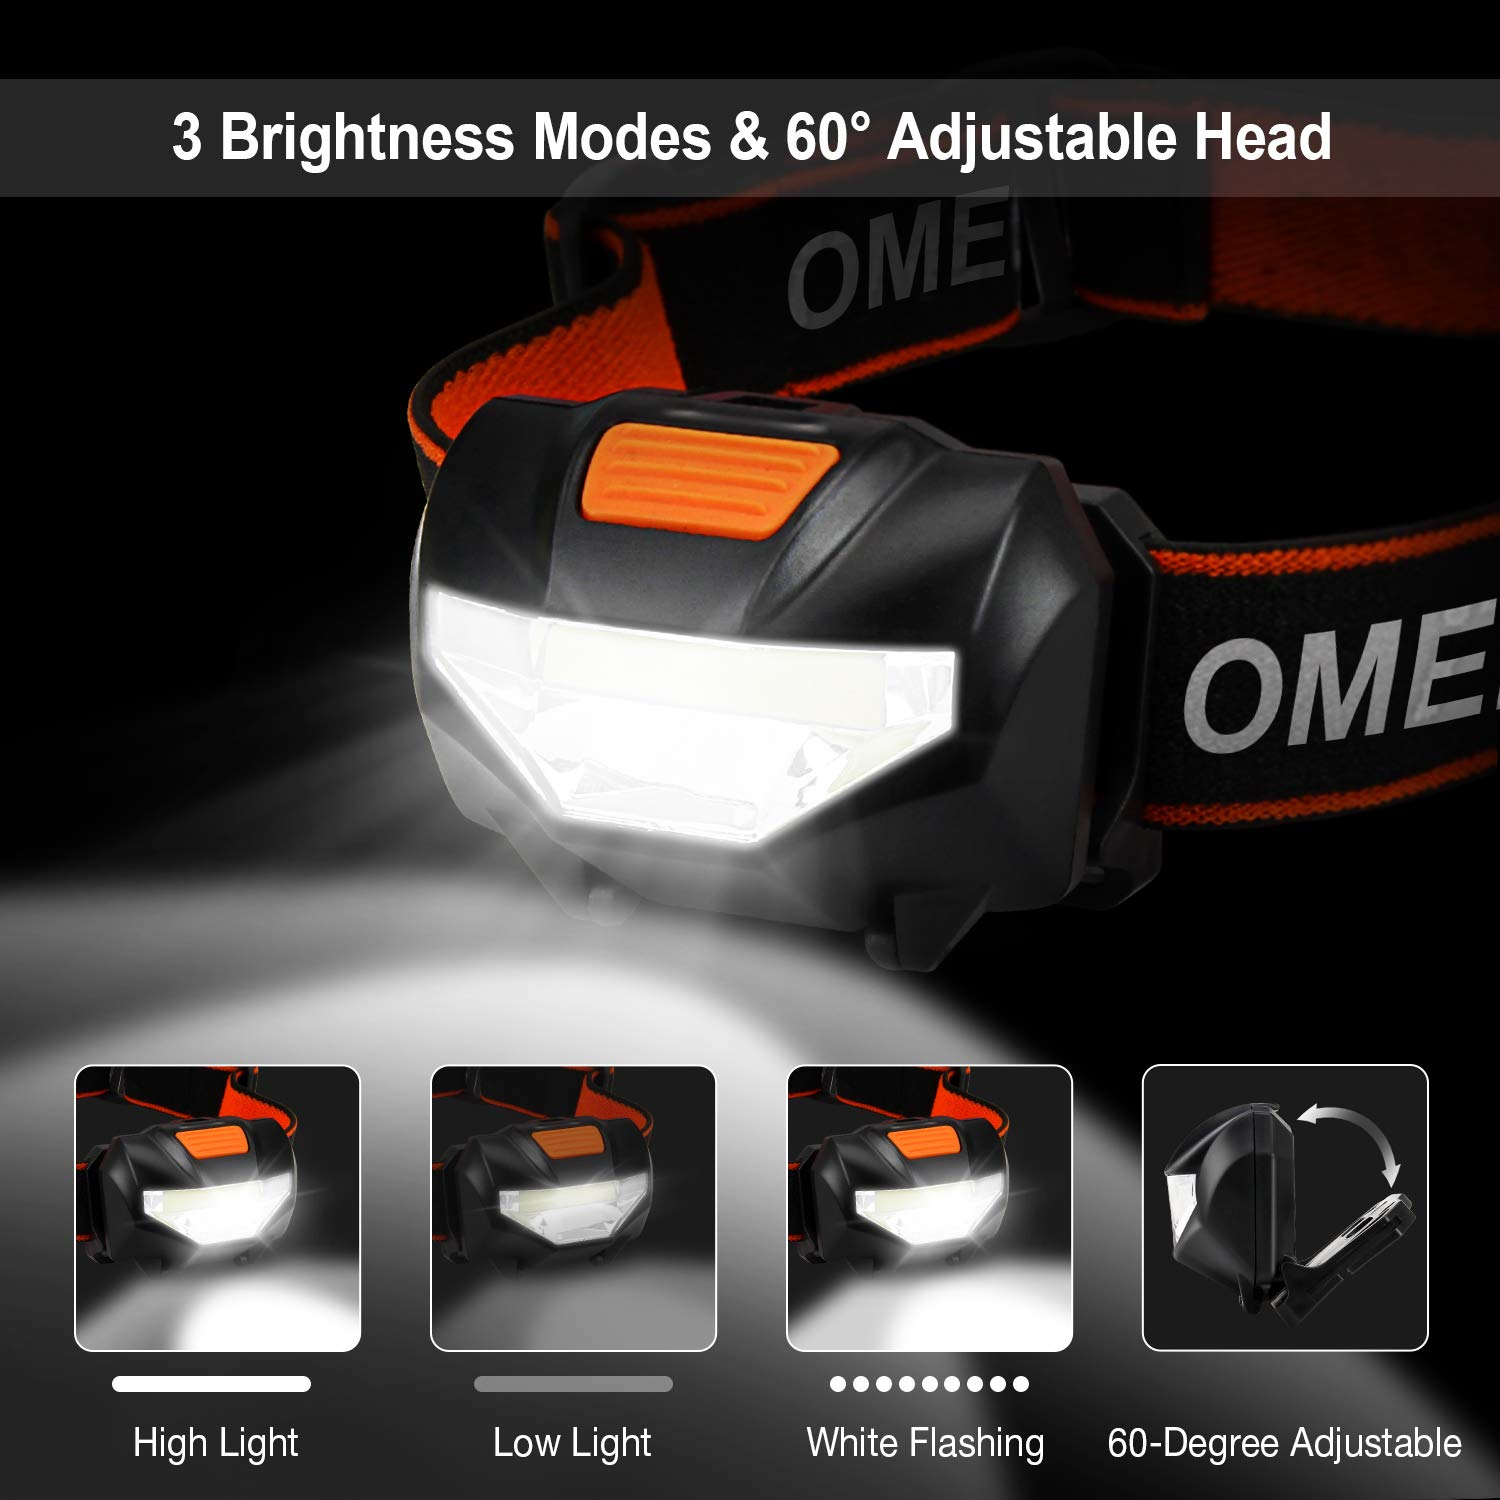 Ultra Bright LED Headlamps 2 Pack with Batteries